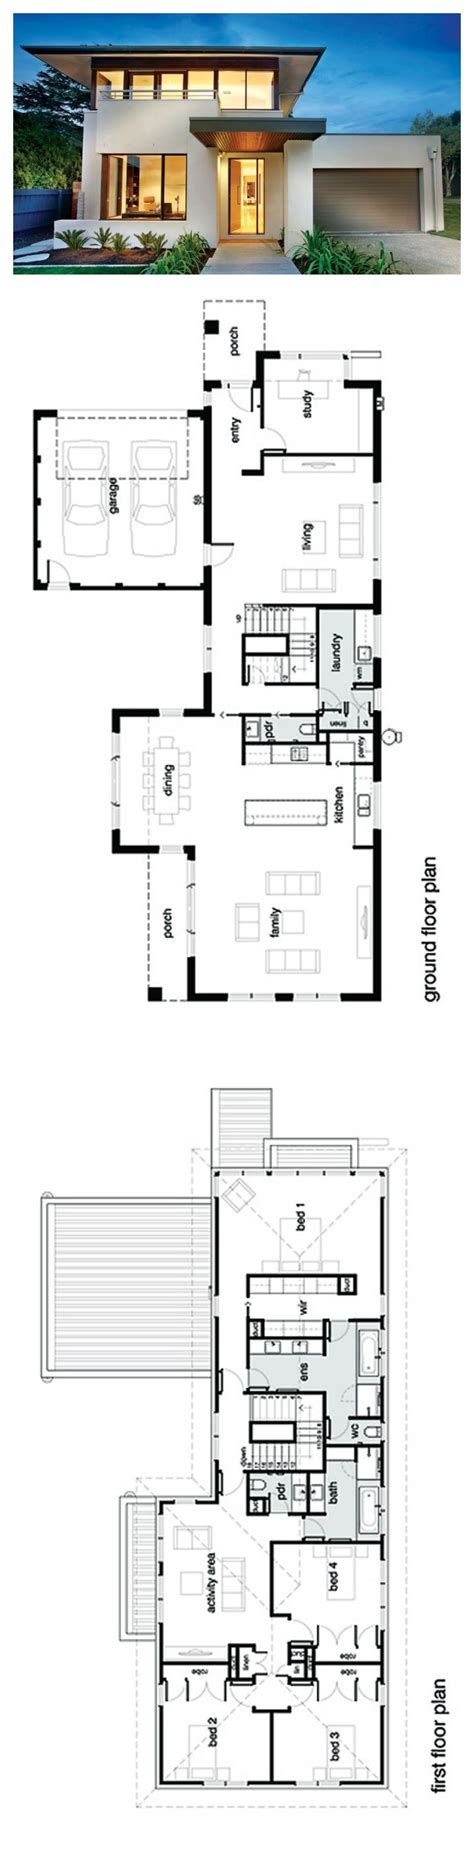 modern family house floor plan the 25 best ideas about modern house plans on pinterest